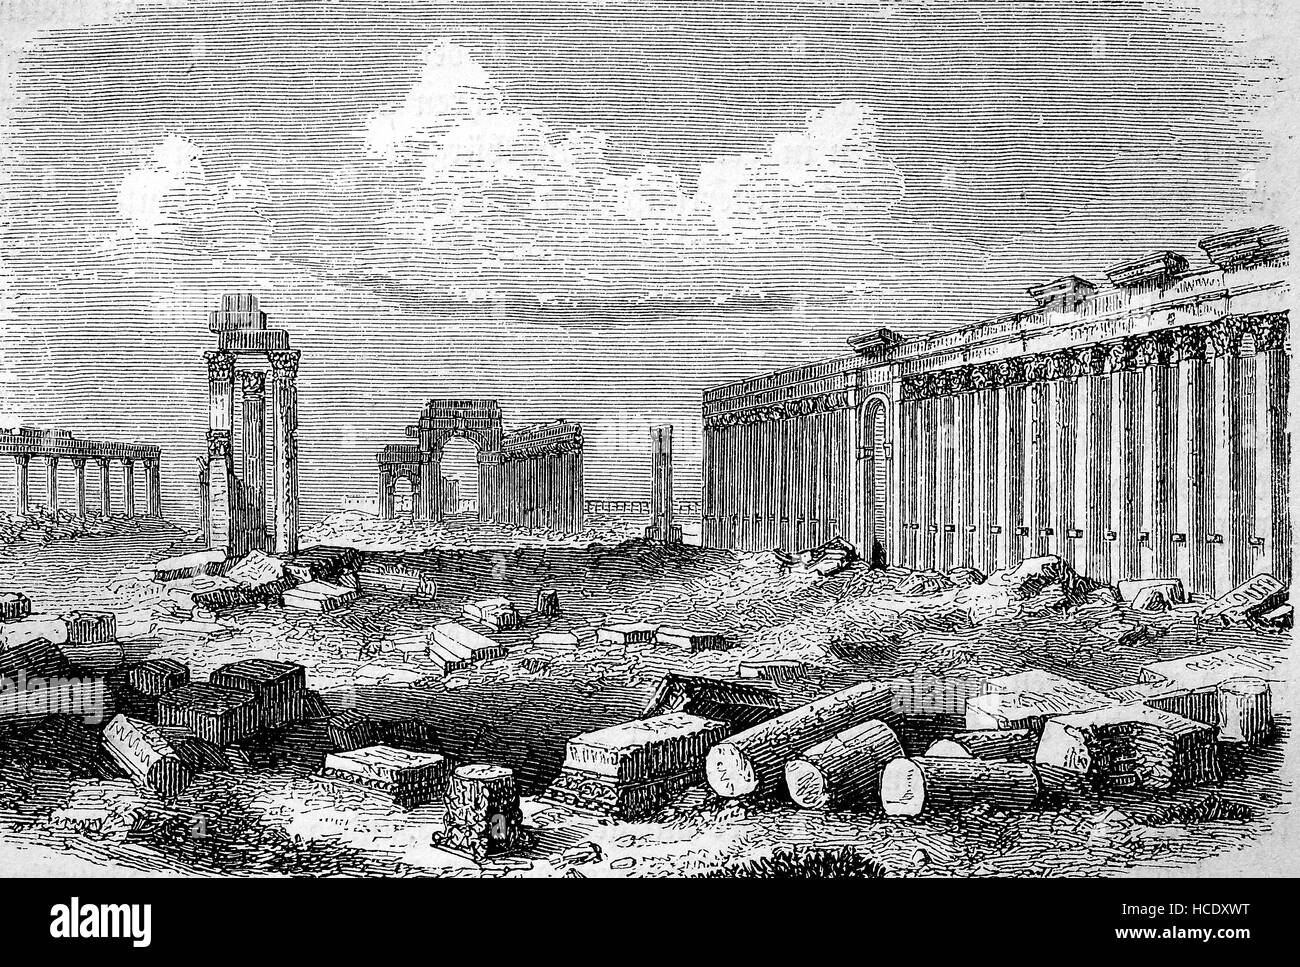 the ruins of Palmyra, Syria, 300 AD, the story of the ancient Rome, roman Empire, Italy - Stock Image